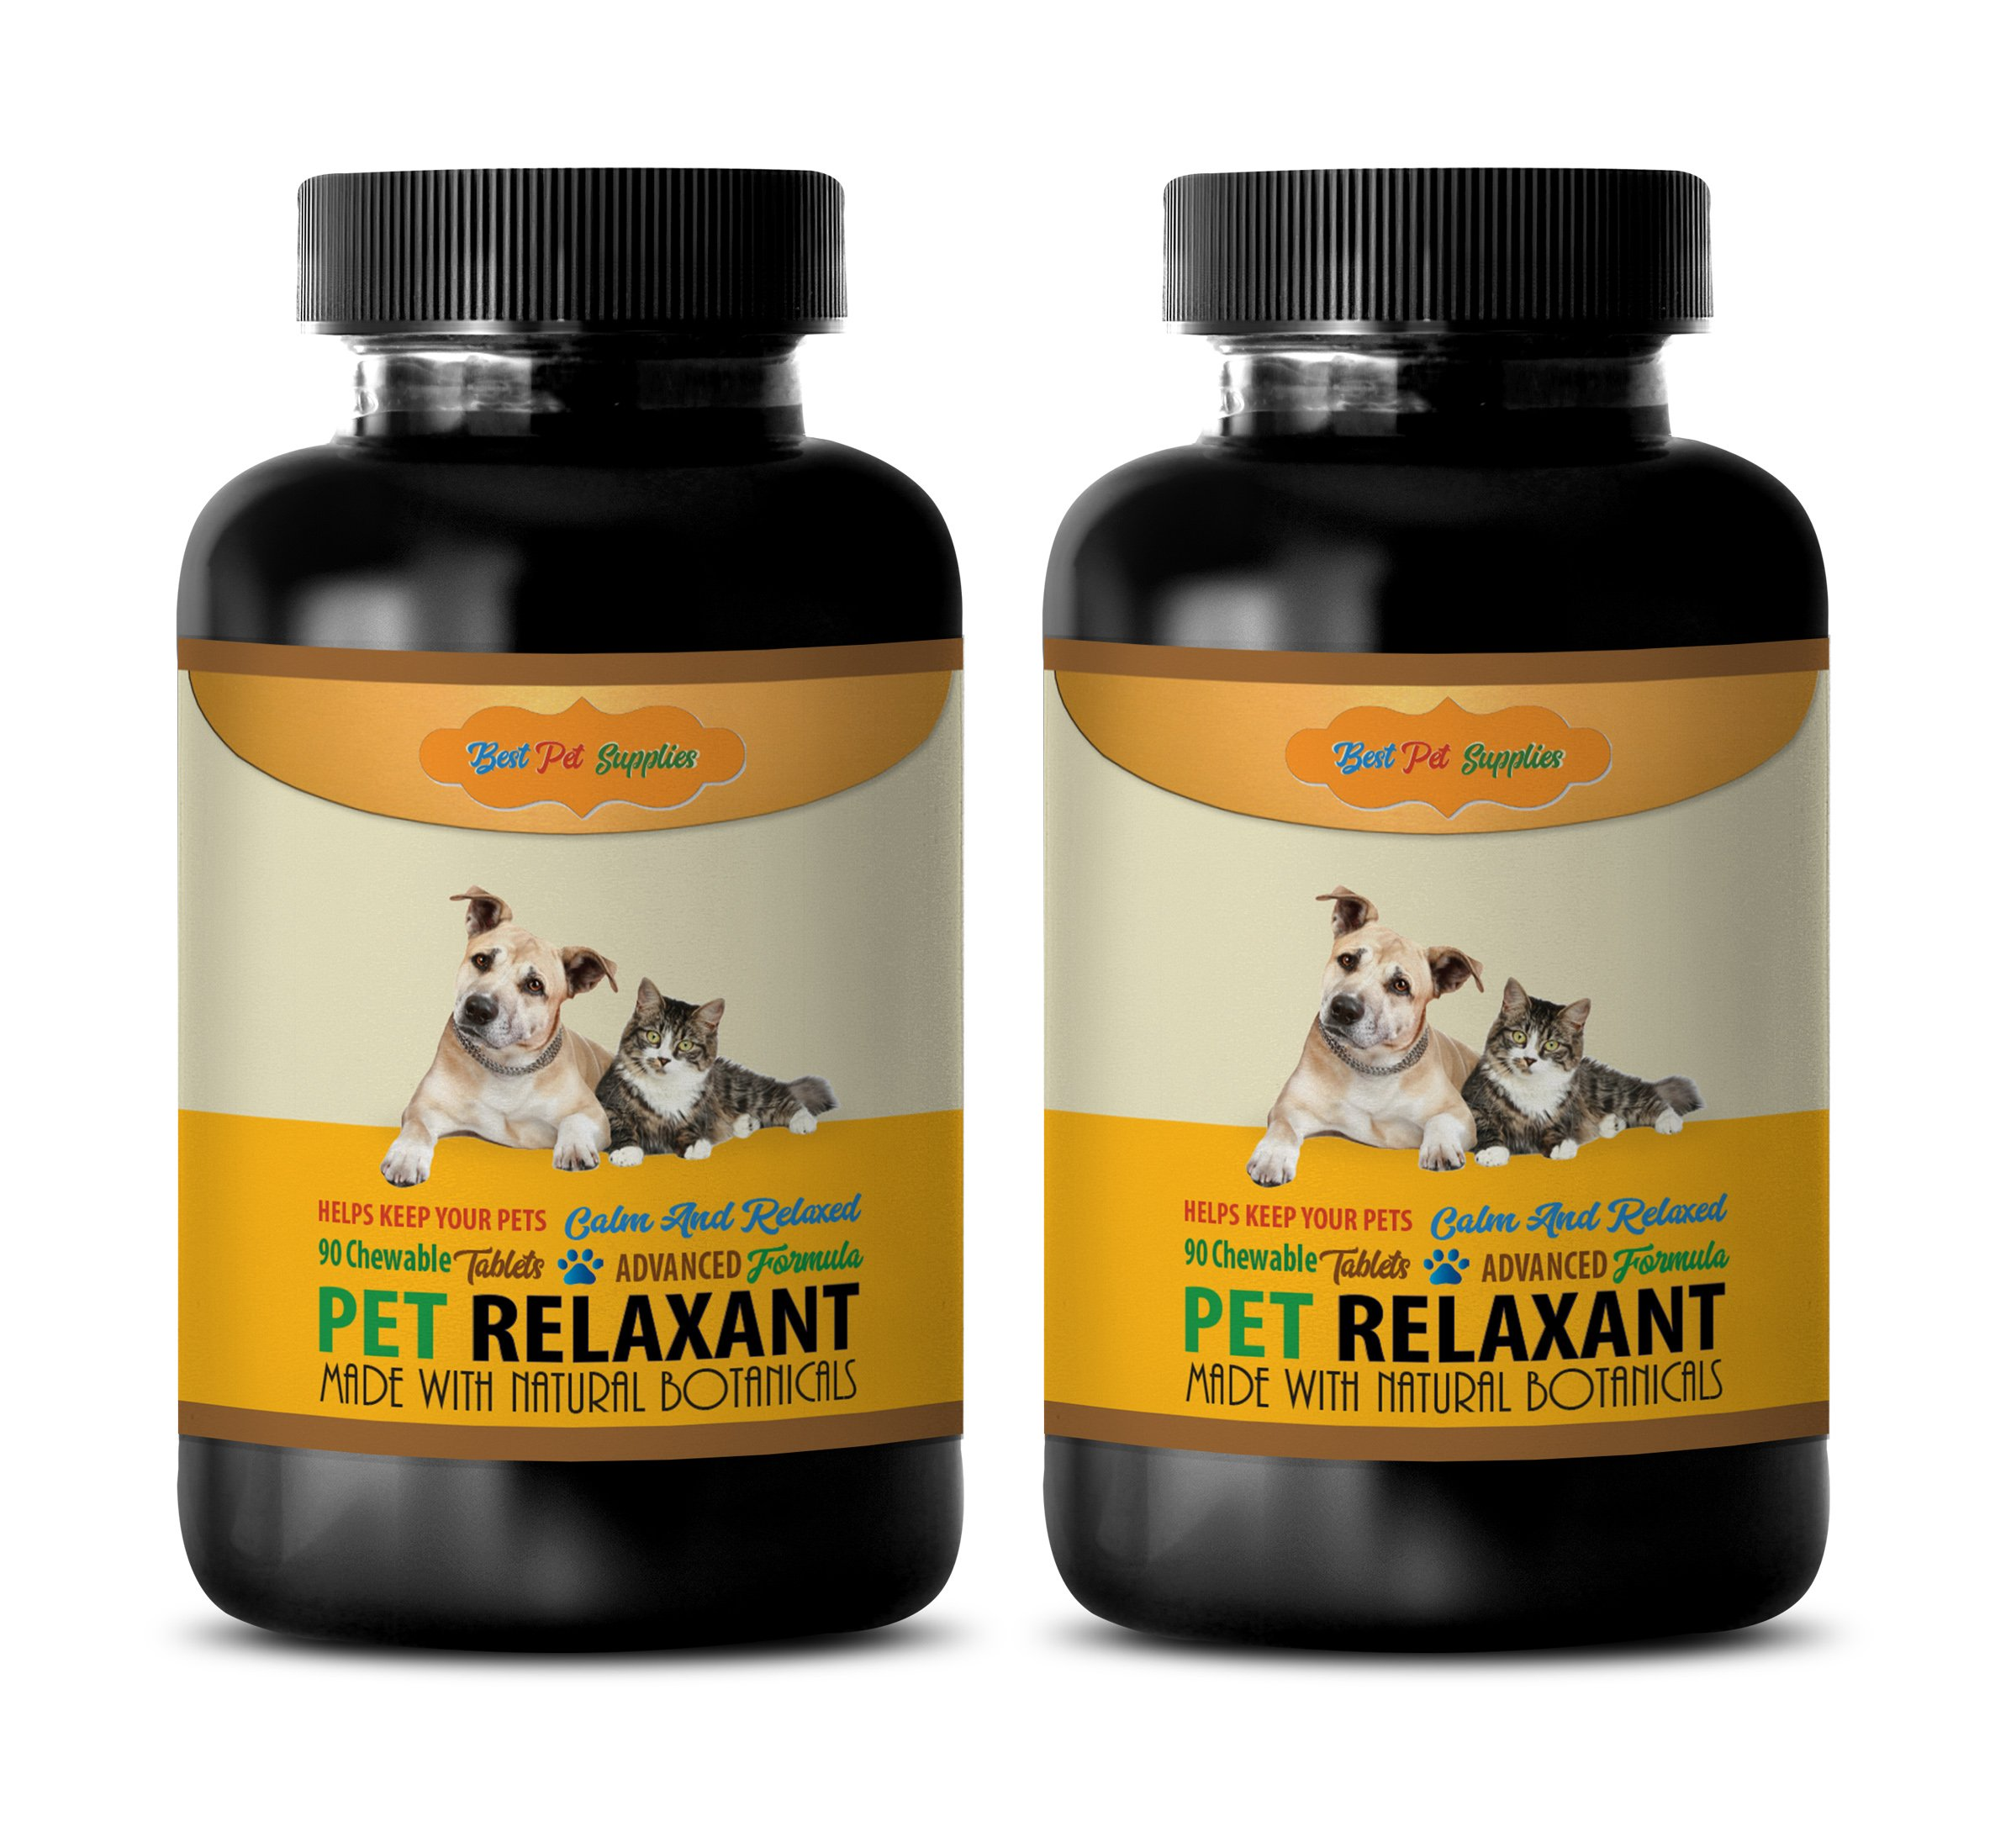 BEST PET SUPPLIES LLC calming cat treats - PET RELAXANT - FOR DOGS AND CATS - CALM AND RELAX YOUR PET - CHEWABLE - cat calming tablets - 180 Chews (2 Bottle) by BEST PET SUPPLIES LLC